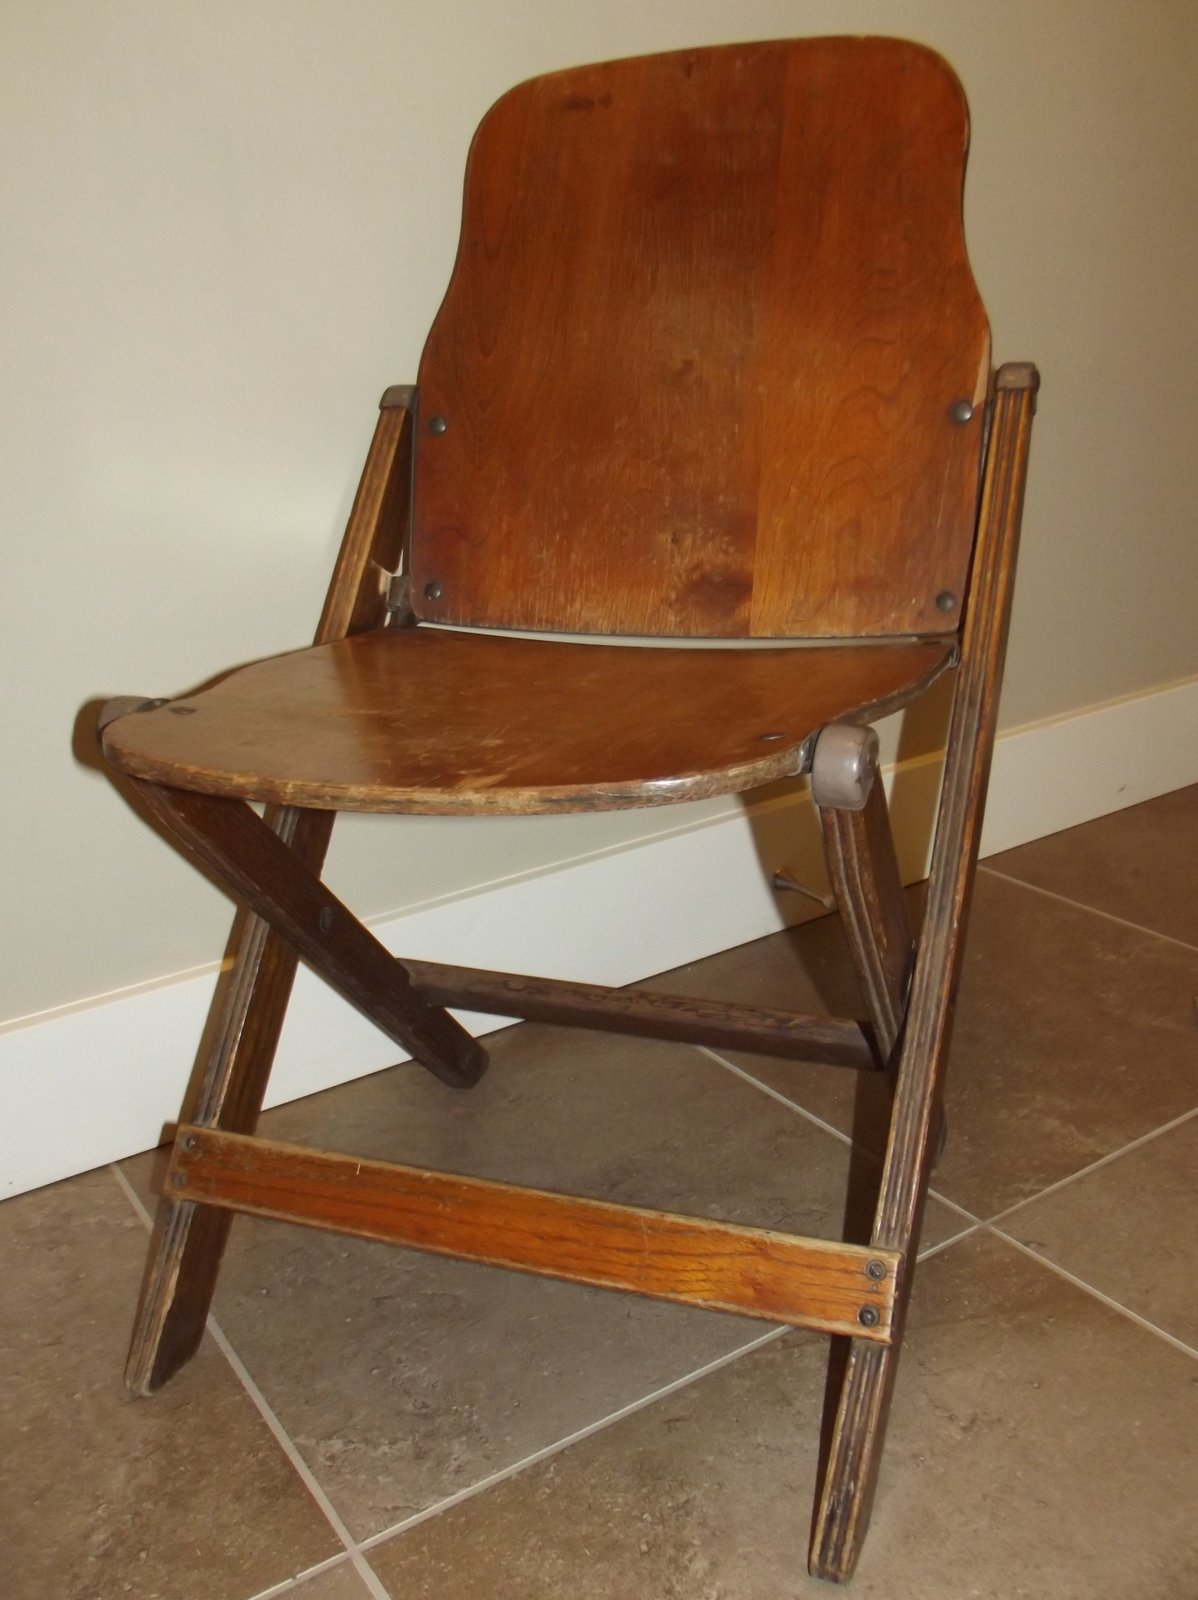 Folding Chairs Canadian Tire Sustainable Slow Stylish A Vintage Folding Plywood Chair